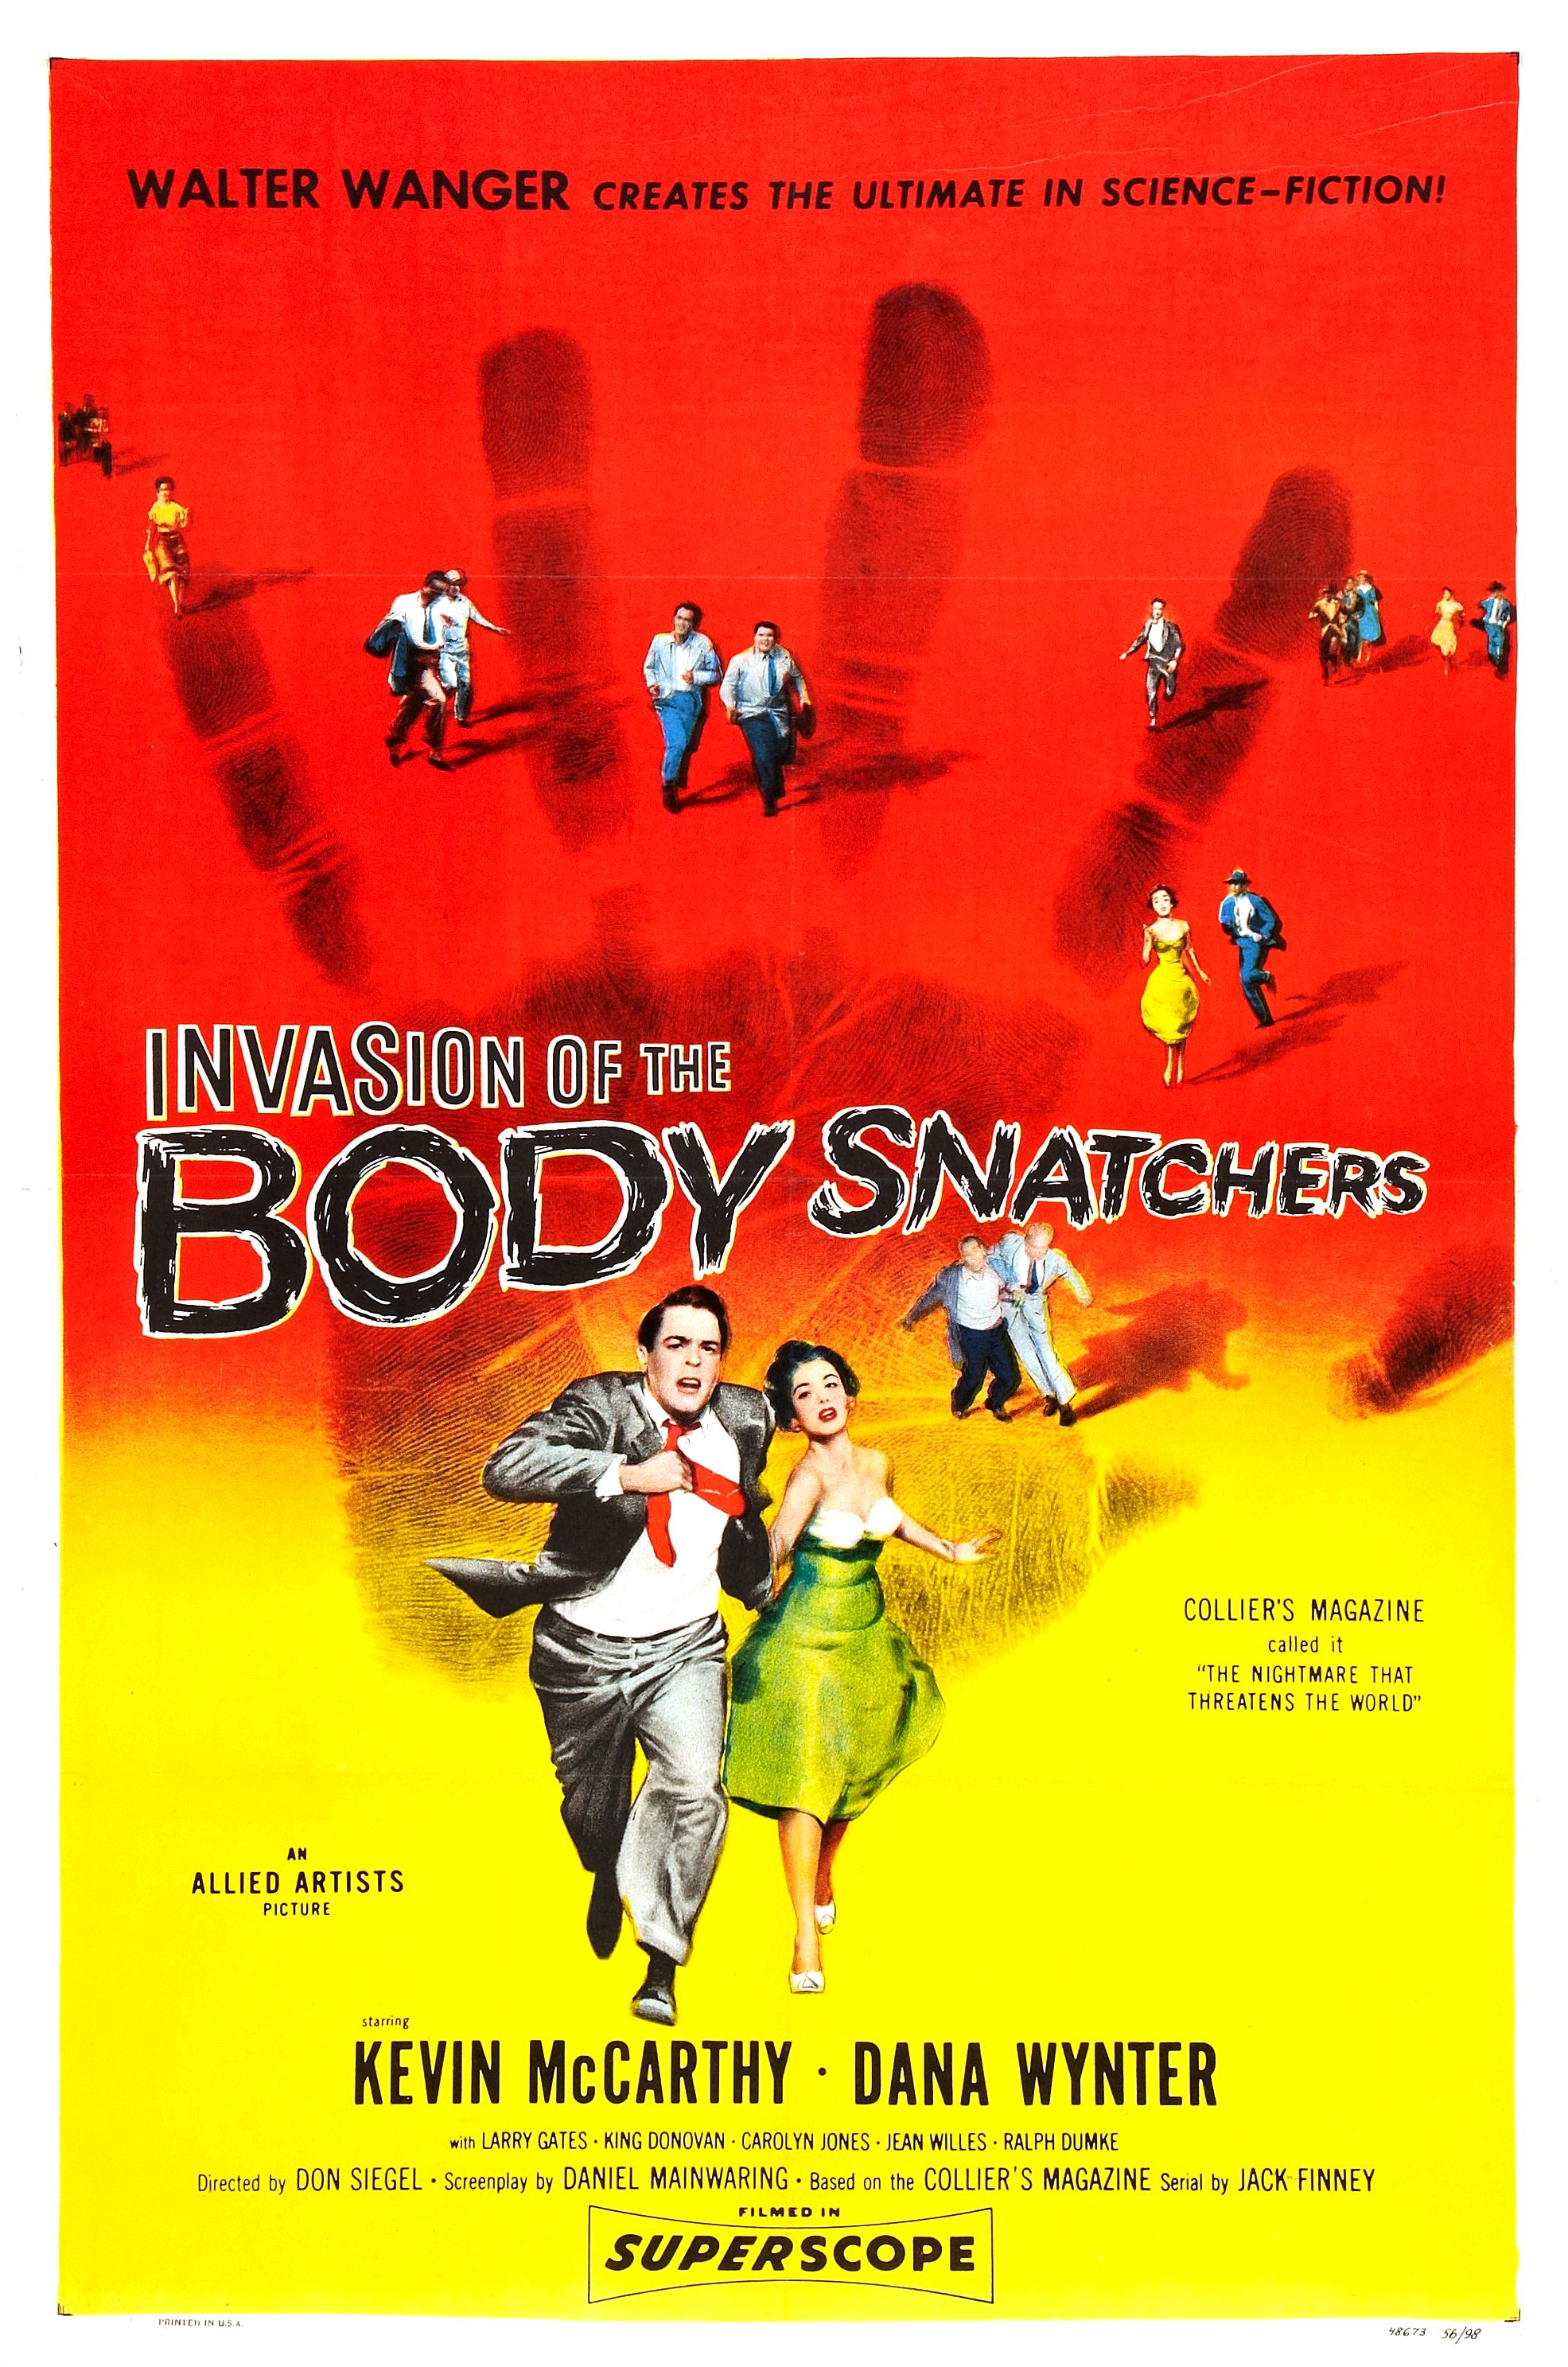 """Invasion of the Body Snatchers - Before you condemn this as a strange addition to the list, ask yourself how you would feel if your significant other had been taken over by some weird, scary, body-snatching alien host.Why is this a good """"breakup"""" classic movie?This is an especially good choice for those who feel their exes have turned into creeps of various kinds. Dana Wynter is pretty creepy."""